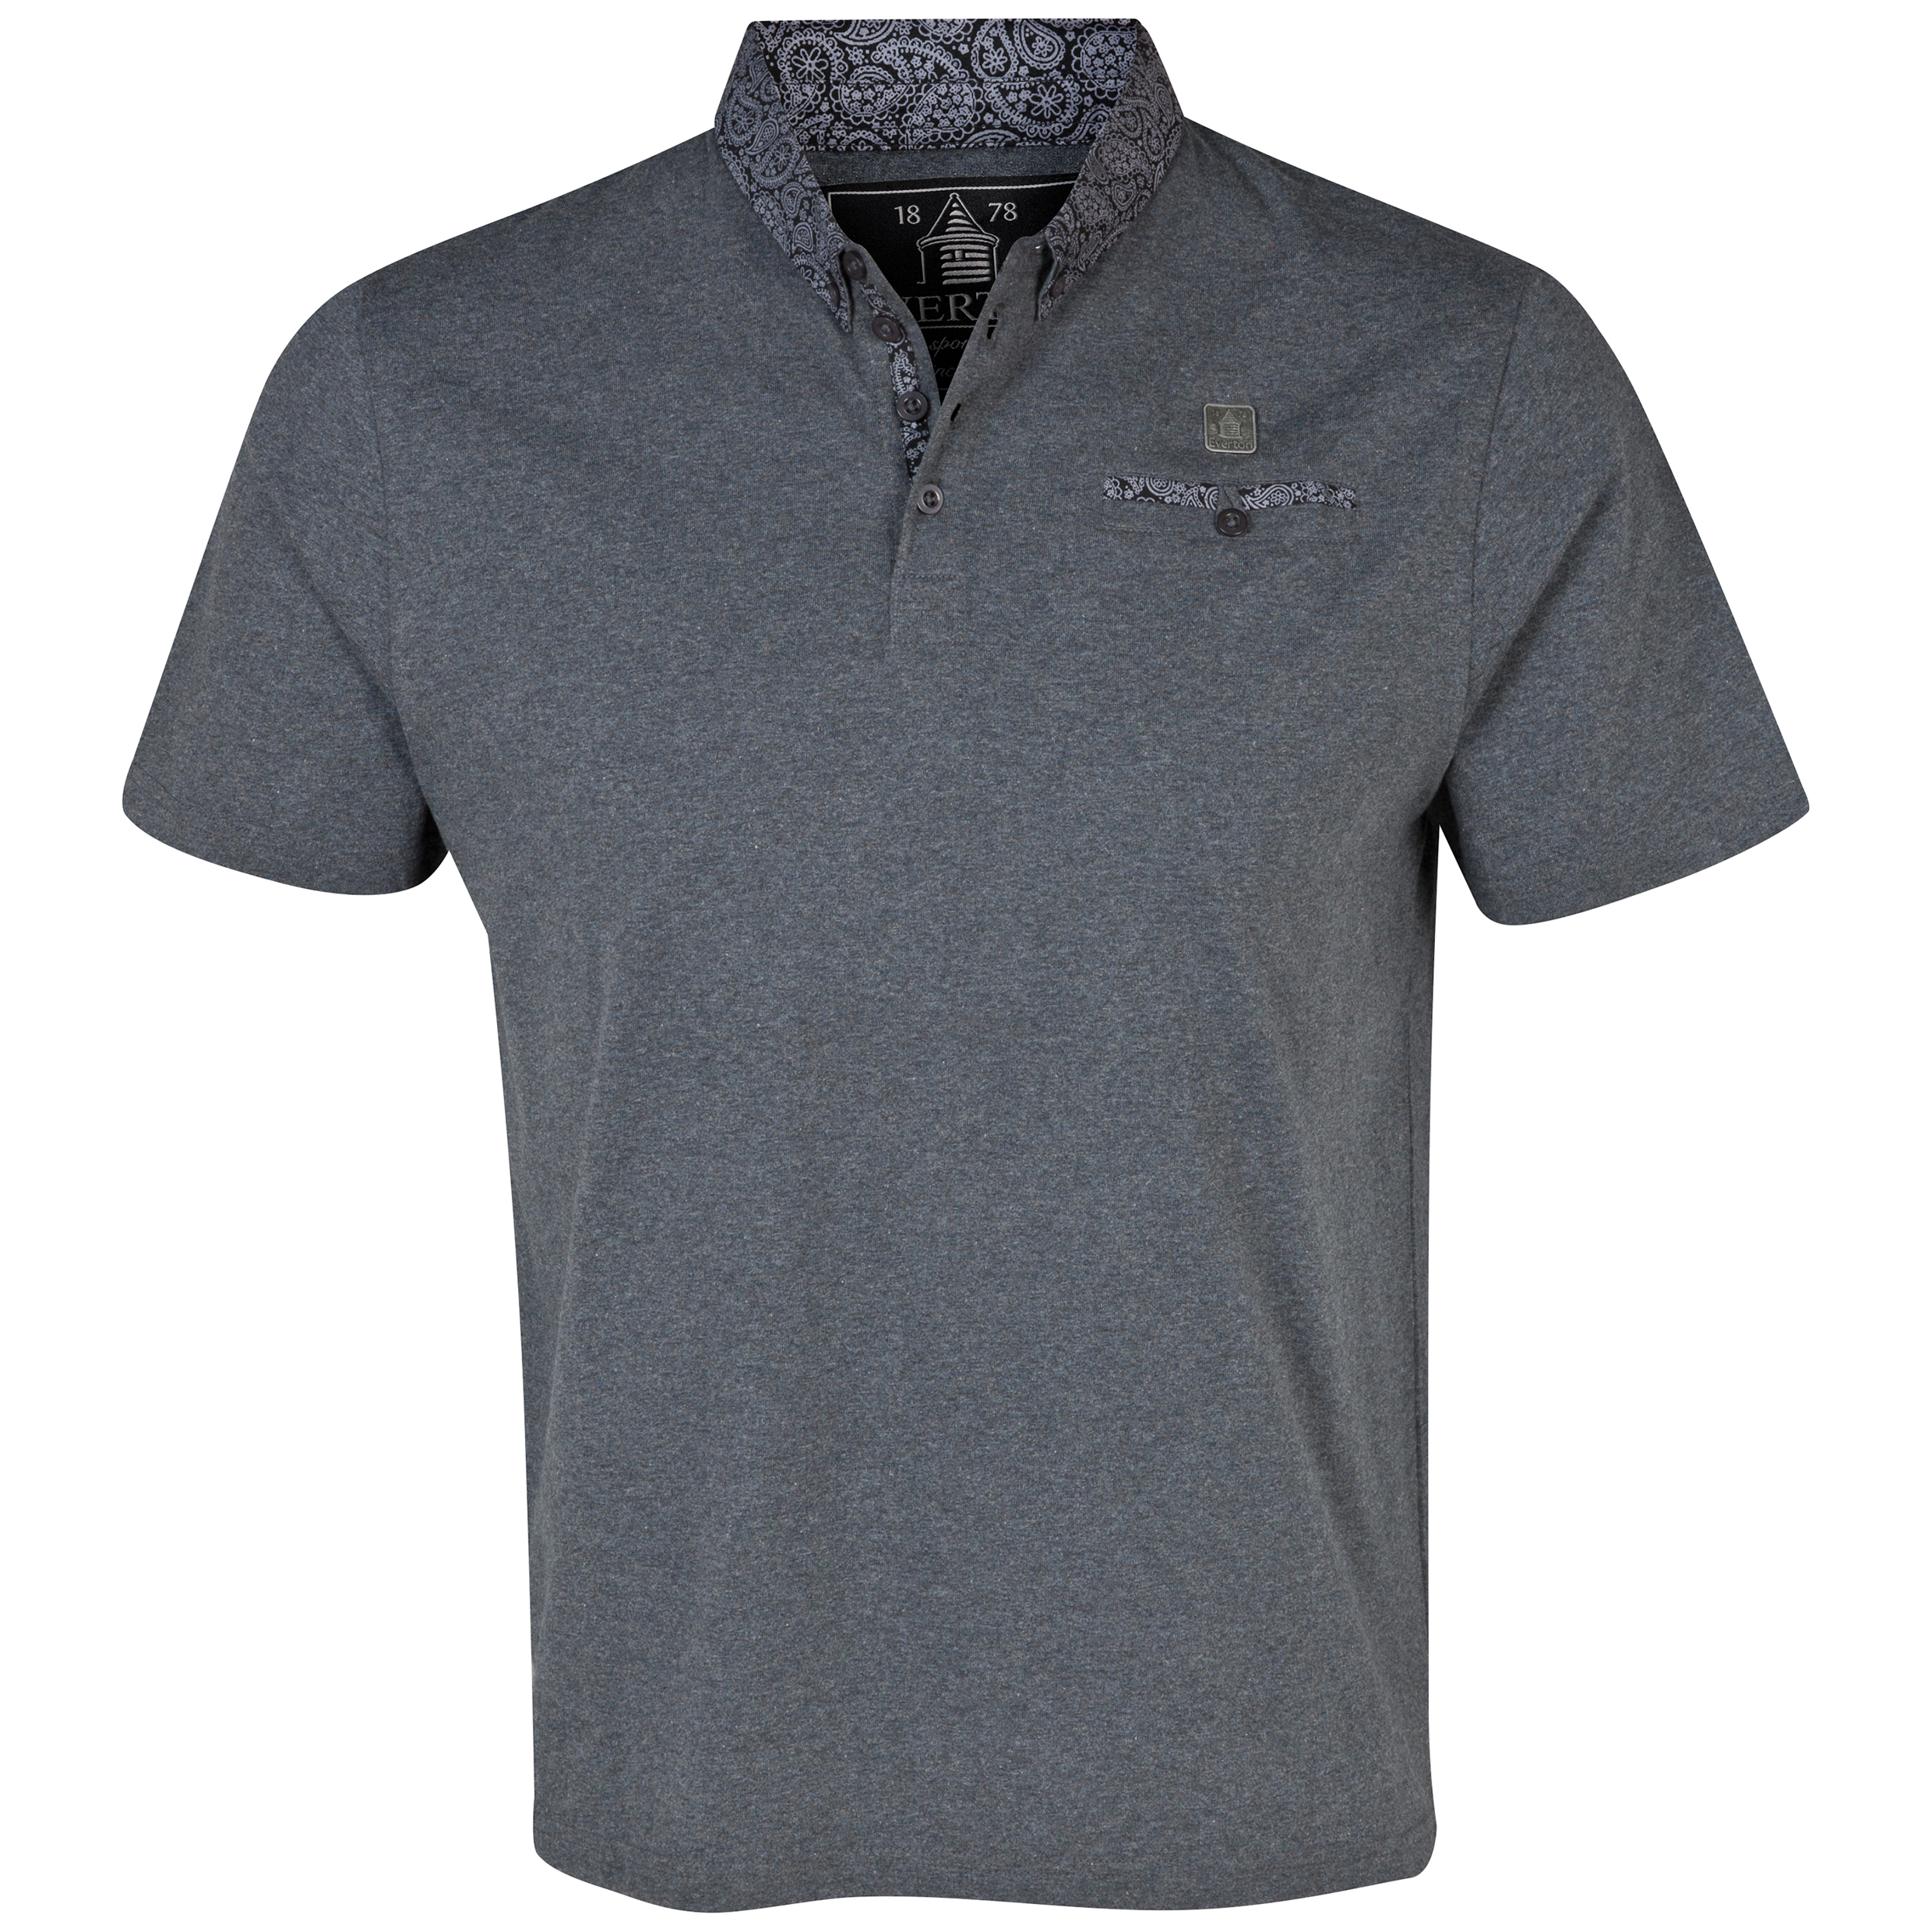 Everton Nevis Polo Shirt - Mens Charcoal